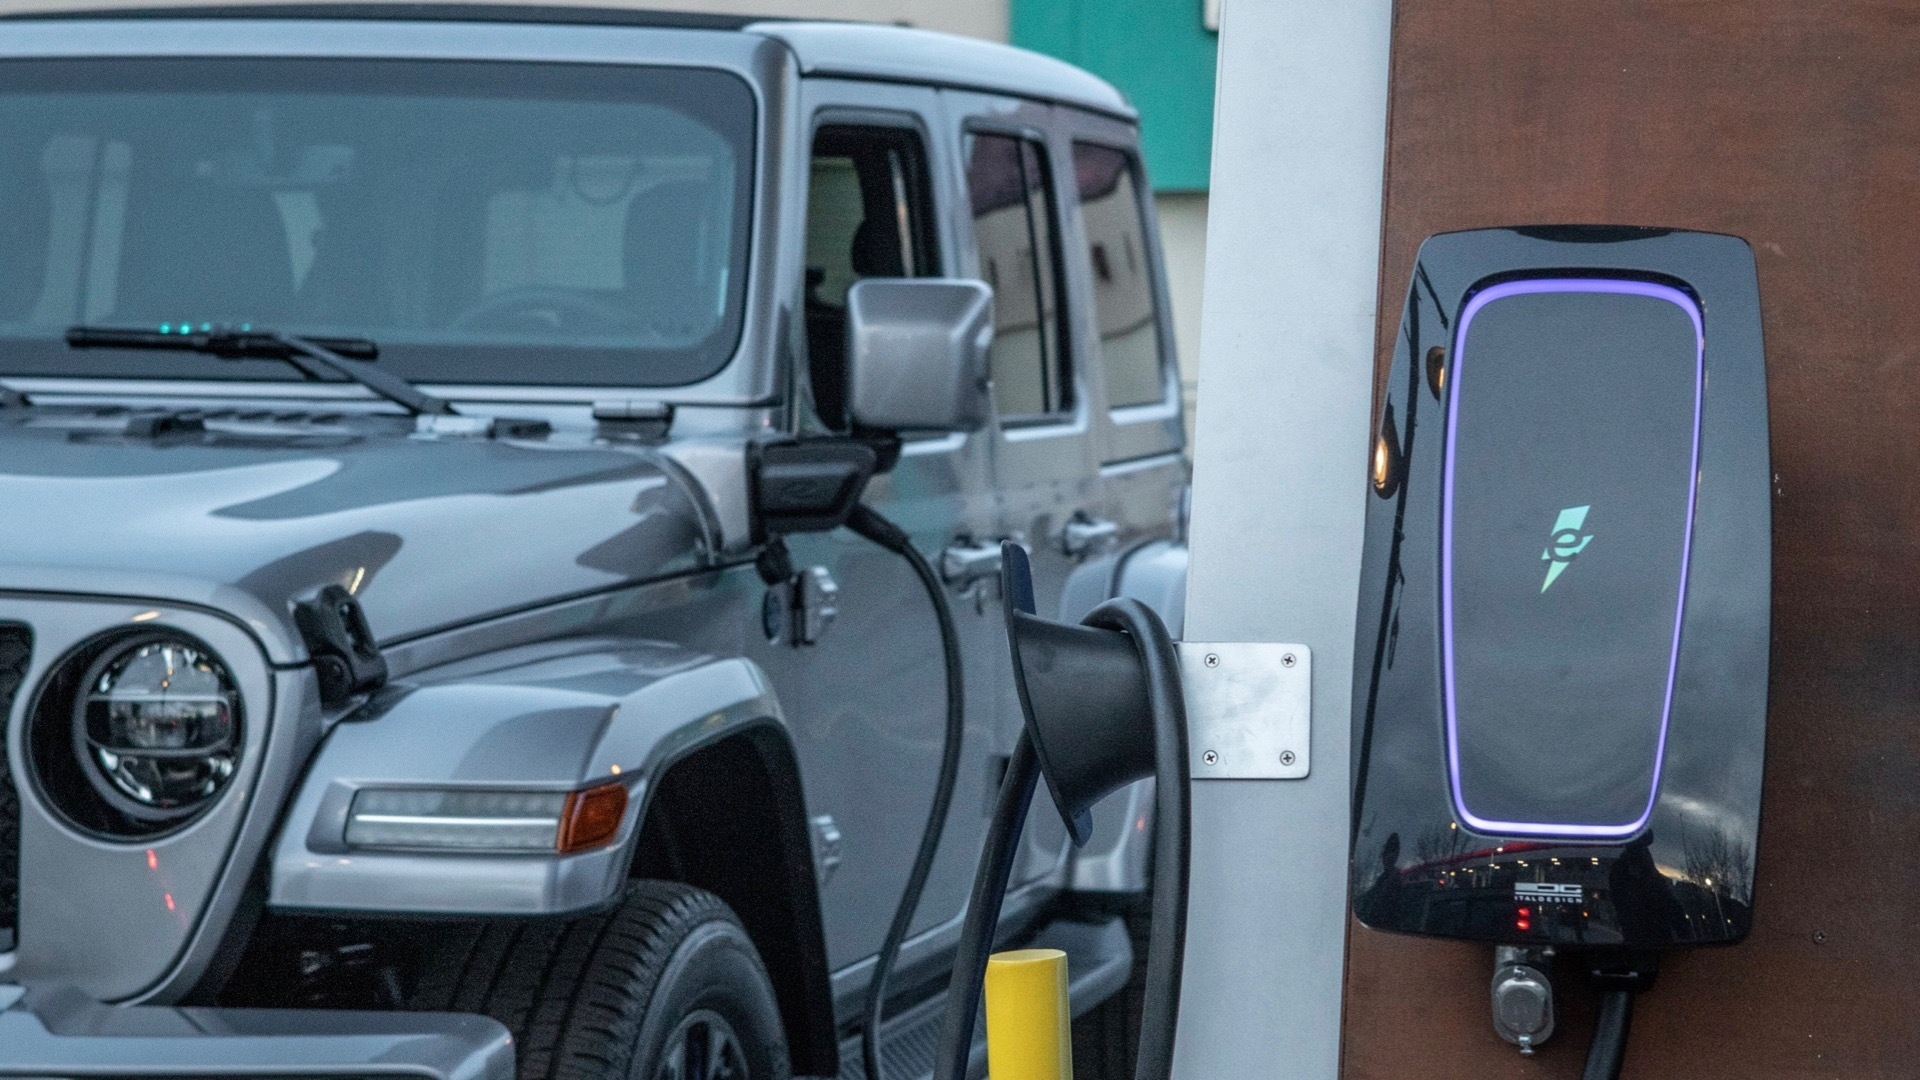 Electrify America Jeep 4xe Charging Network